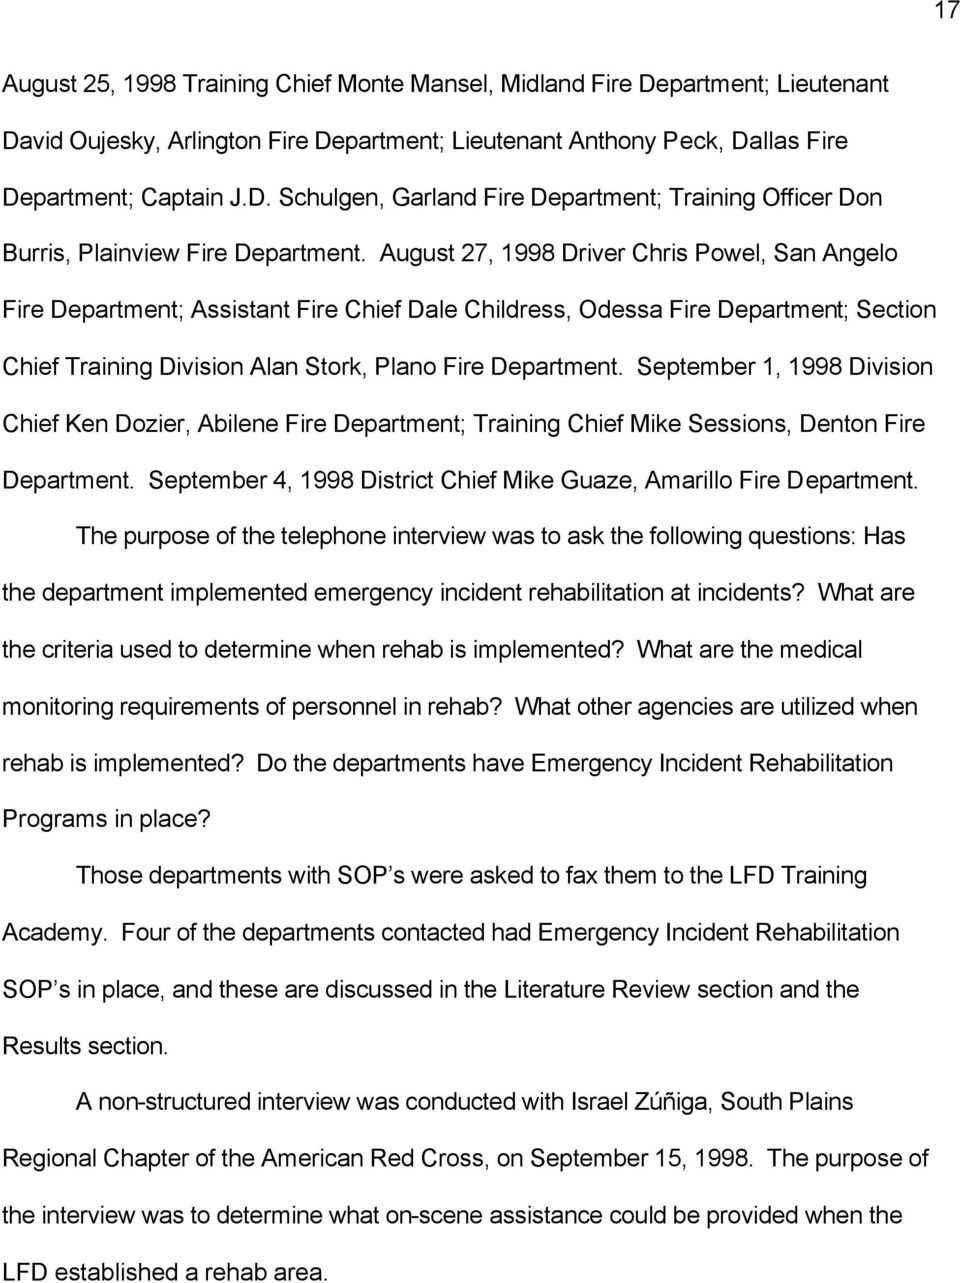 September 1, 1998 Division Chief Ken Dozier, Abilene Fire Department; Training Chief Mike Sessions, Denton Fire Department. September 4, 1998 District Chief Mike Guaze, Amarillo Fire Department.